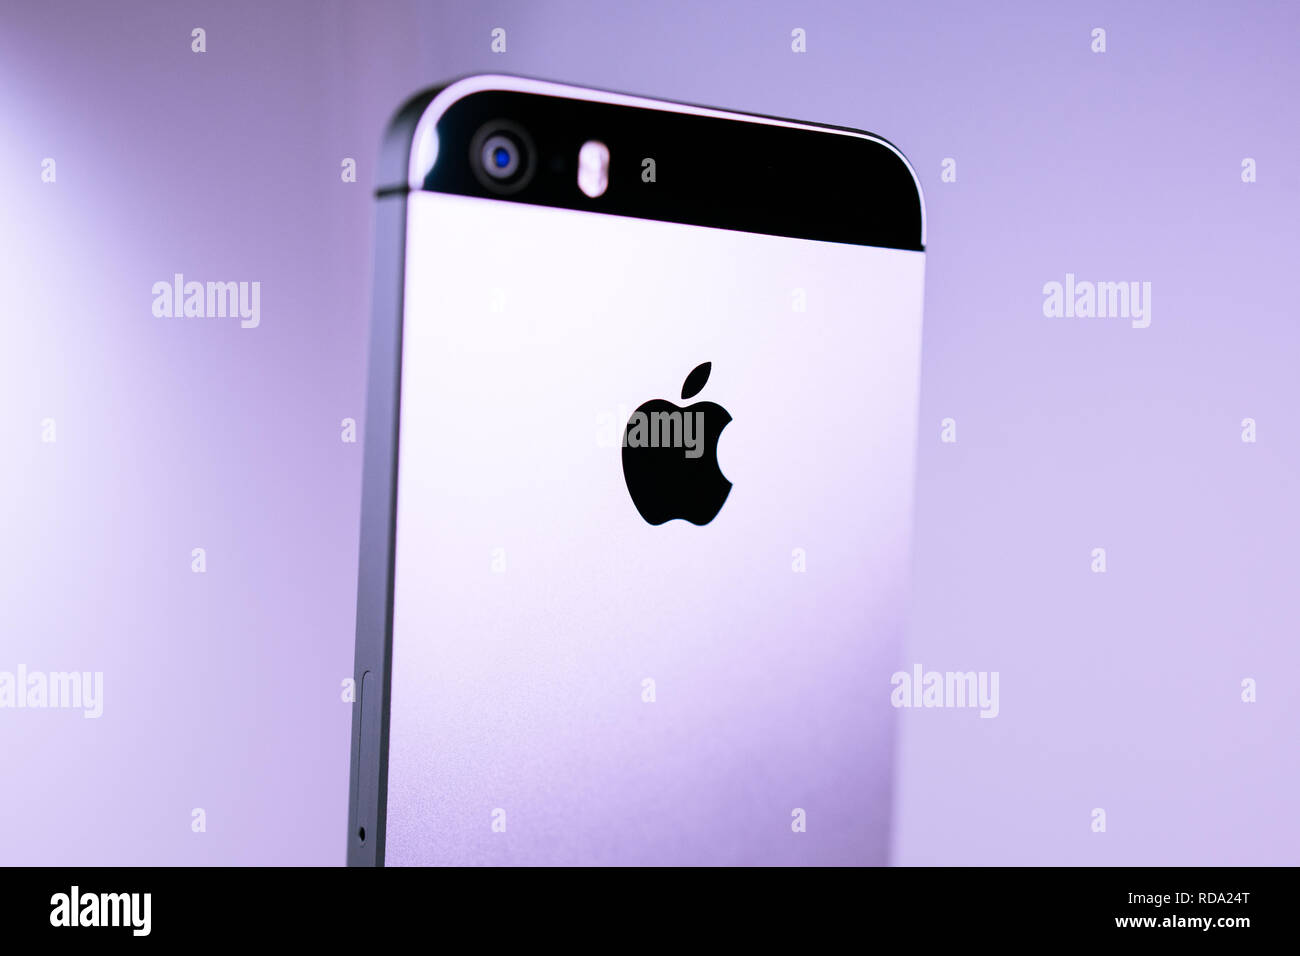 Paris, France - Apr 21, 2016: Newest Apple Computers iPhone SE smartphone after unboxing on pale pink background featuring 12 megapixel camera and Apple logotype - tilt-shift lens used Stock Photo